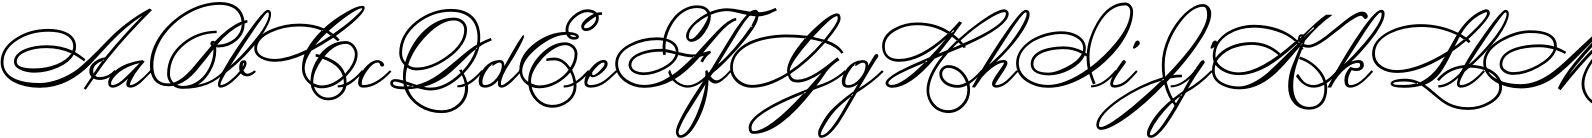 Spencerian By Product Font